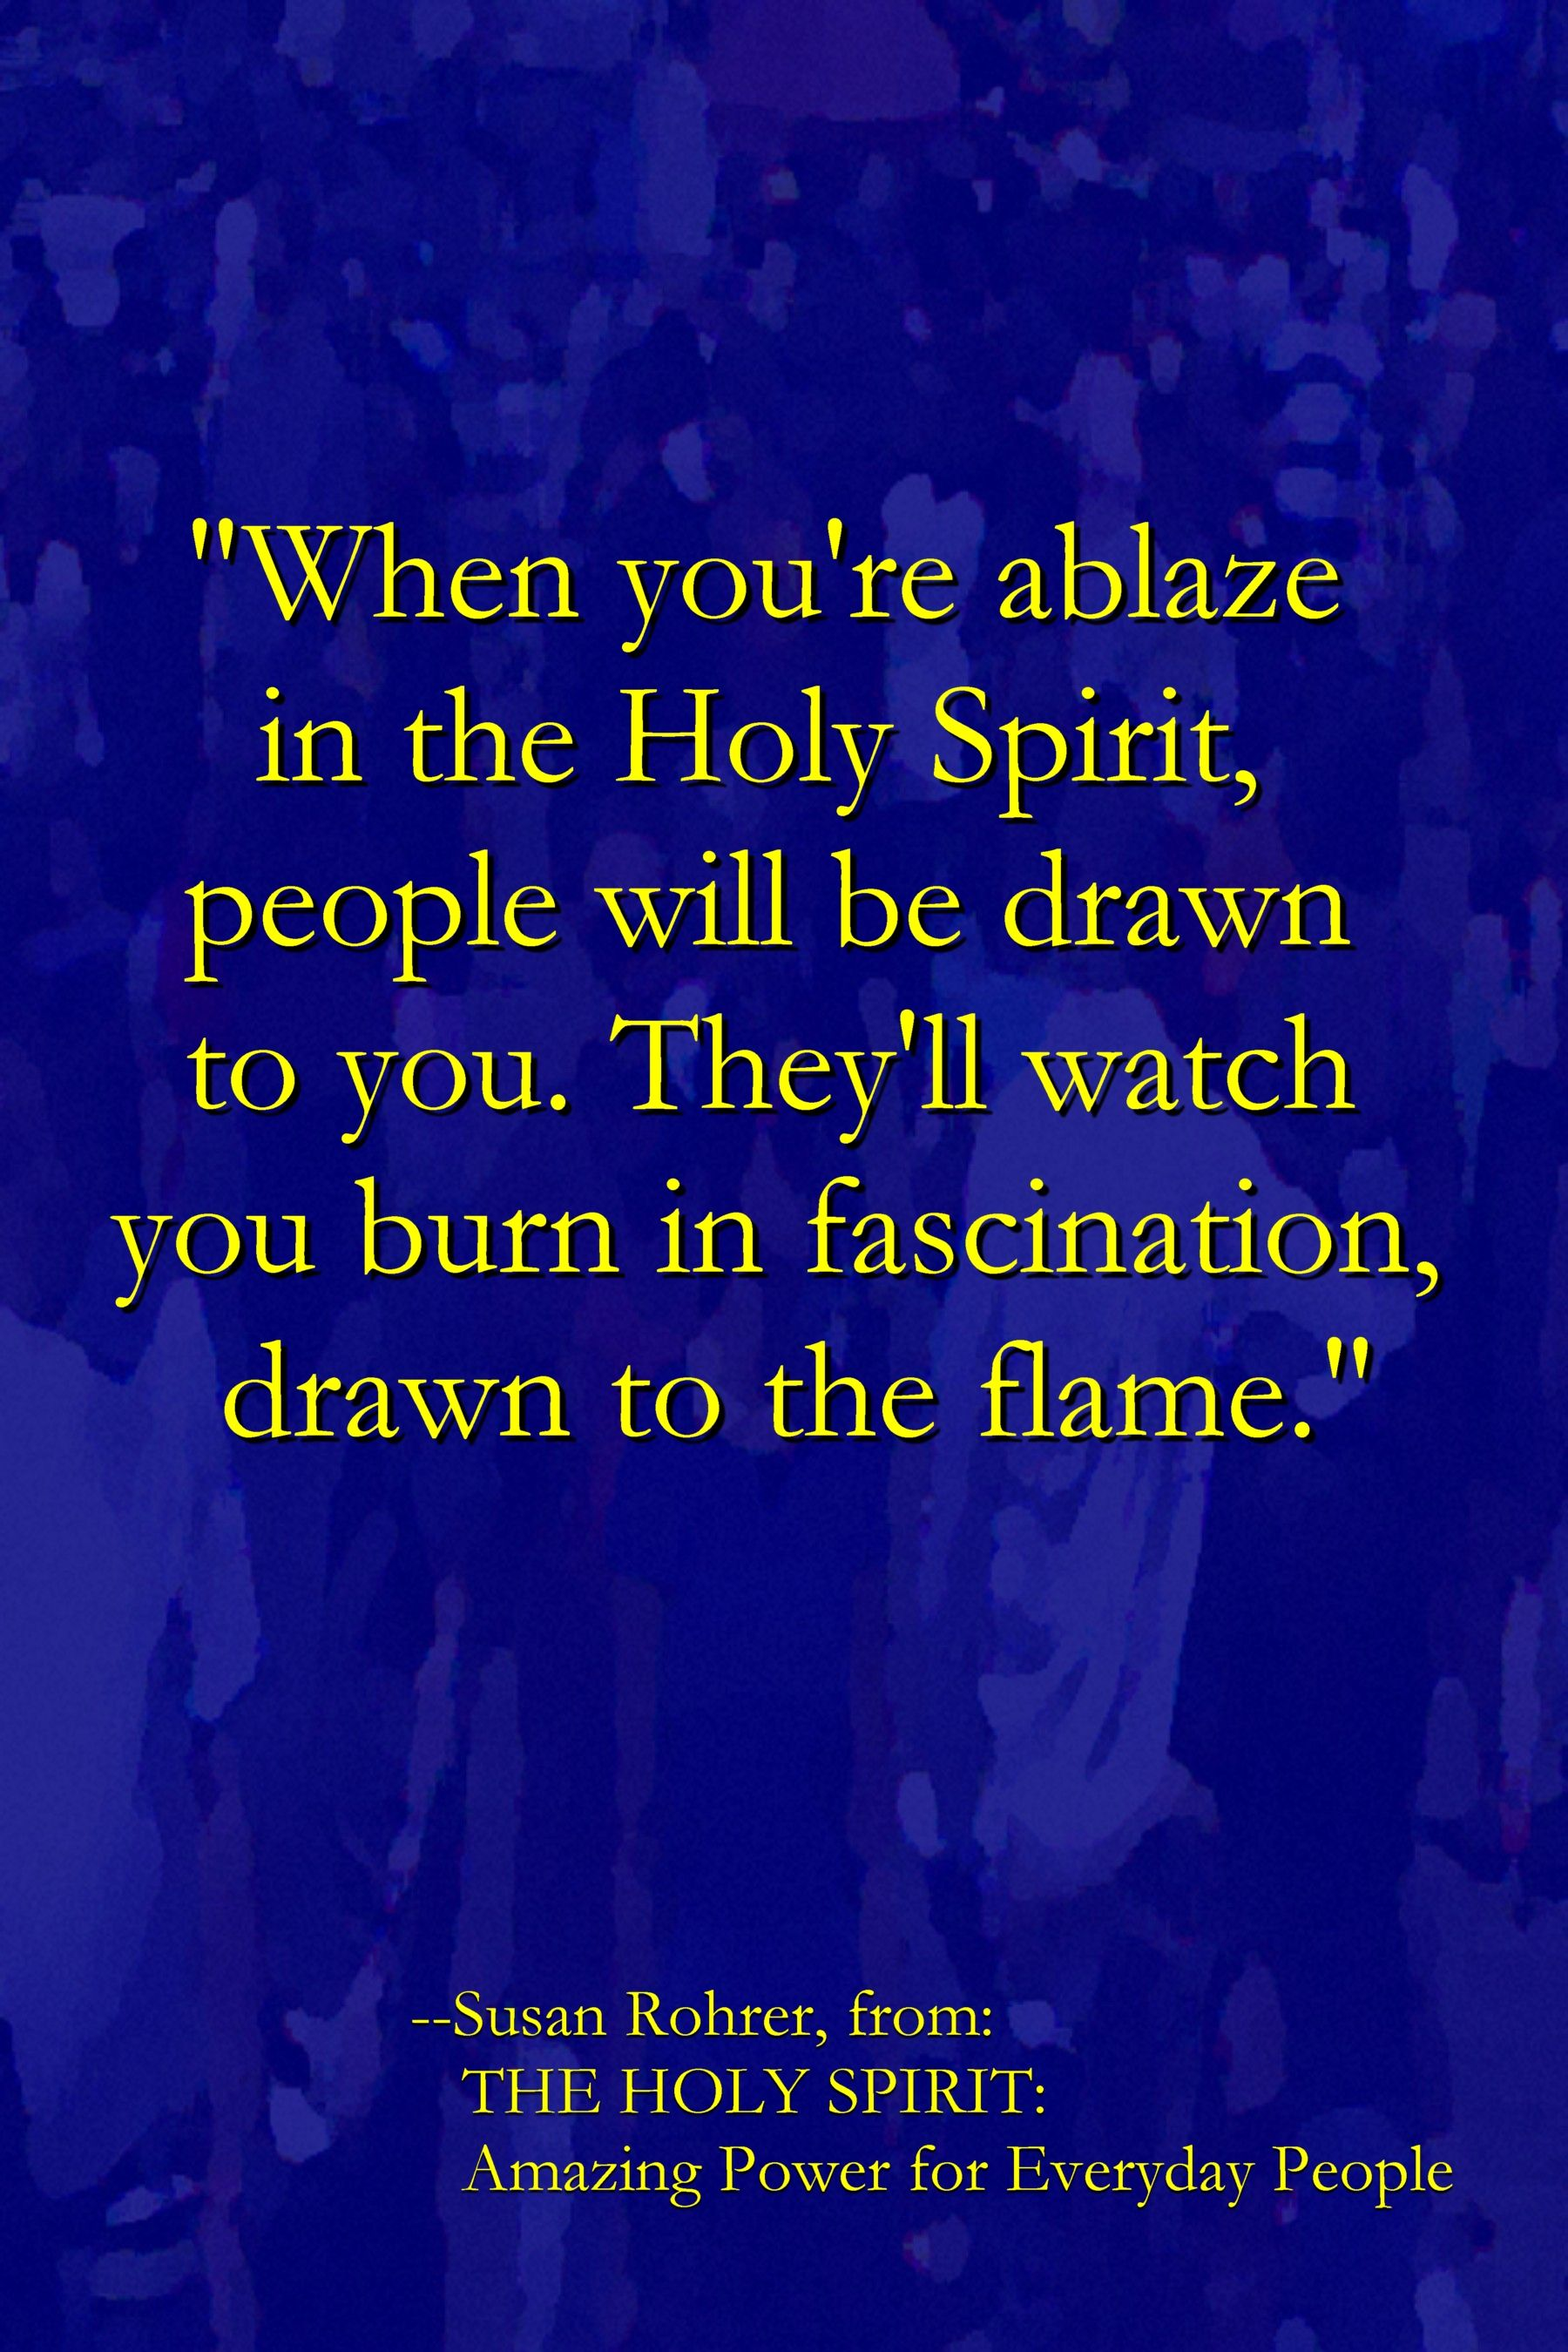 Quotes About The Holy Spirit Quote From The Holy Spirit Amazing Power For Everyday People